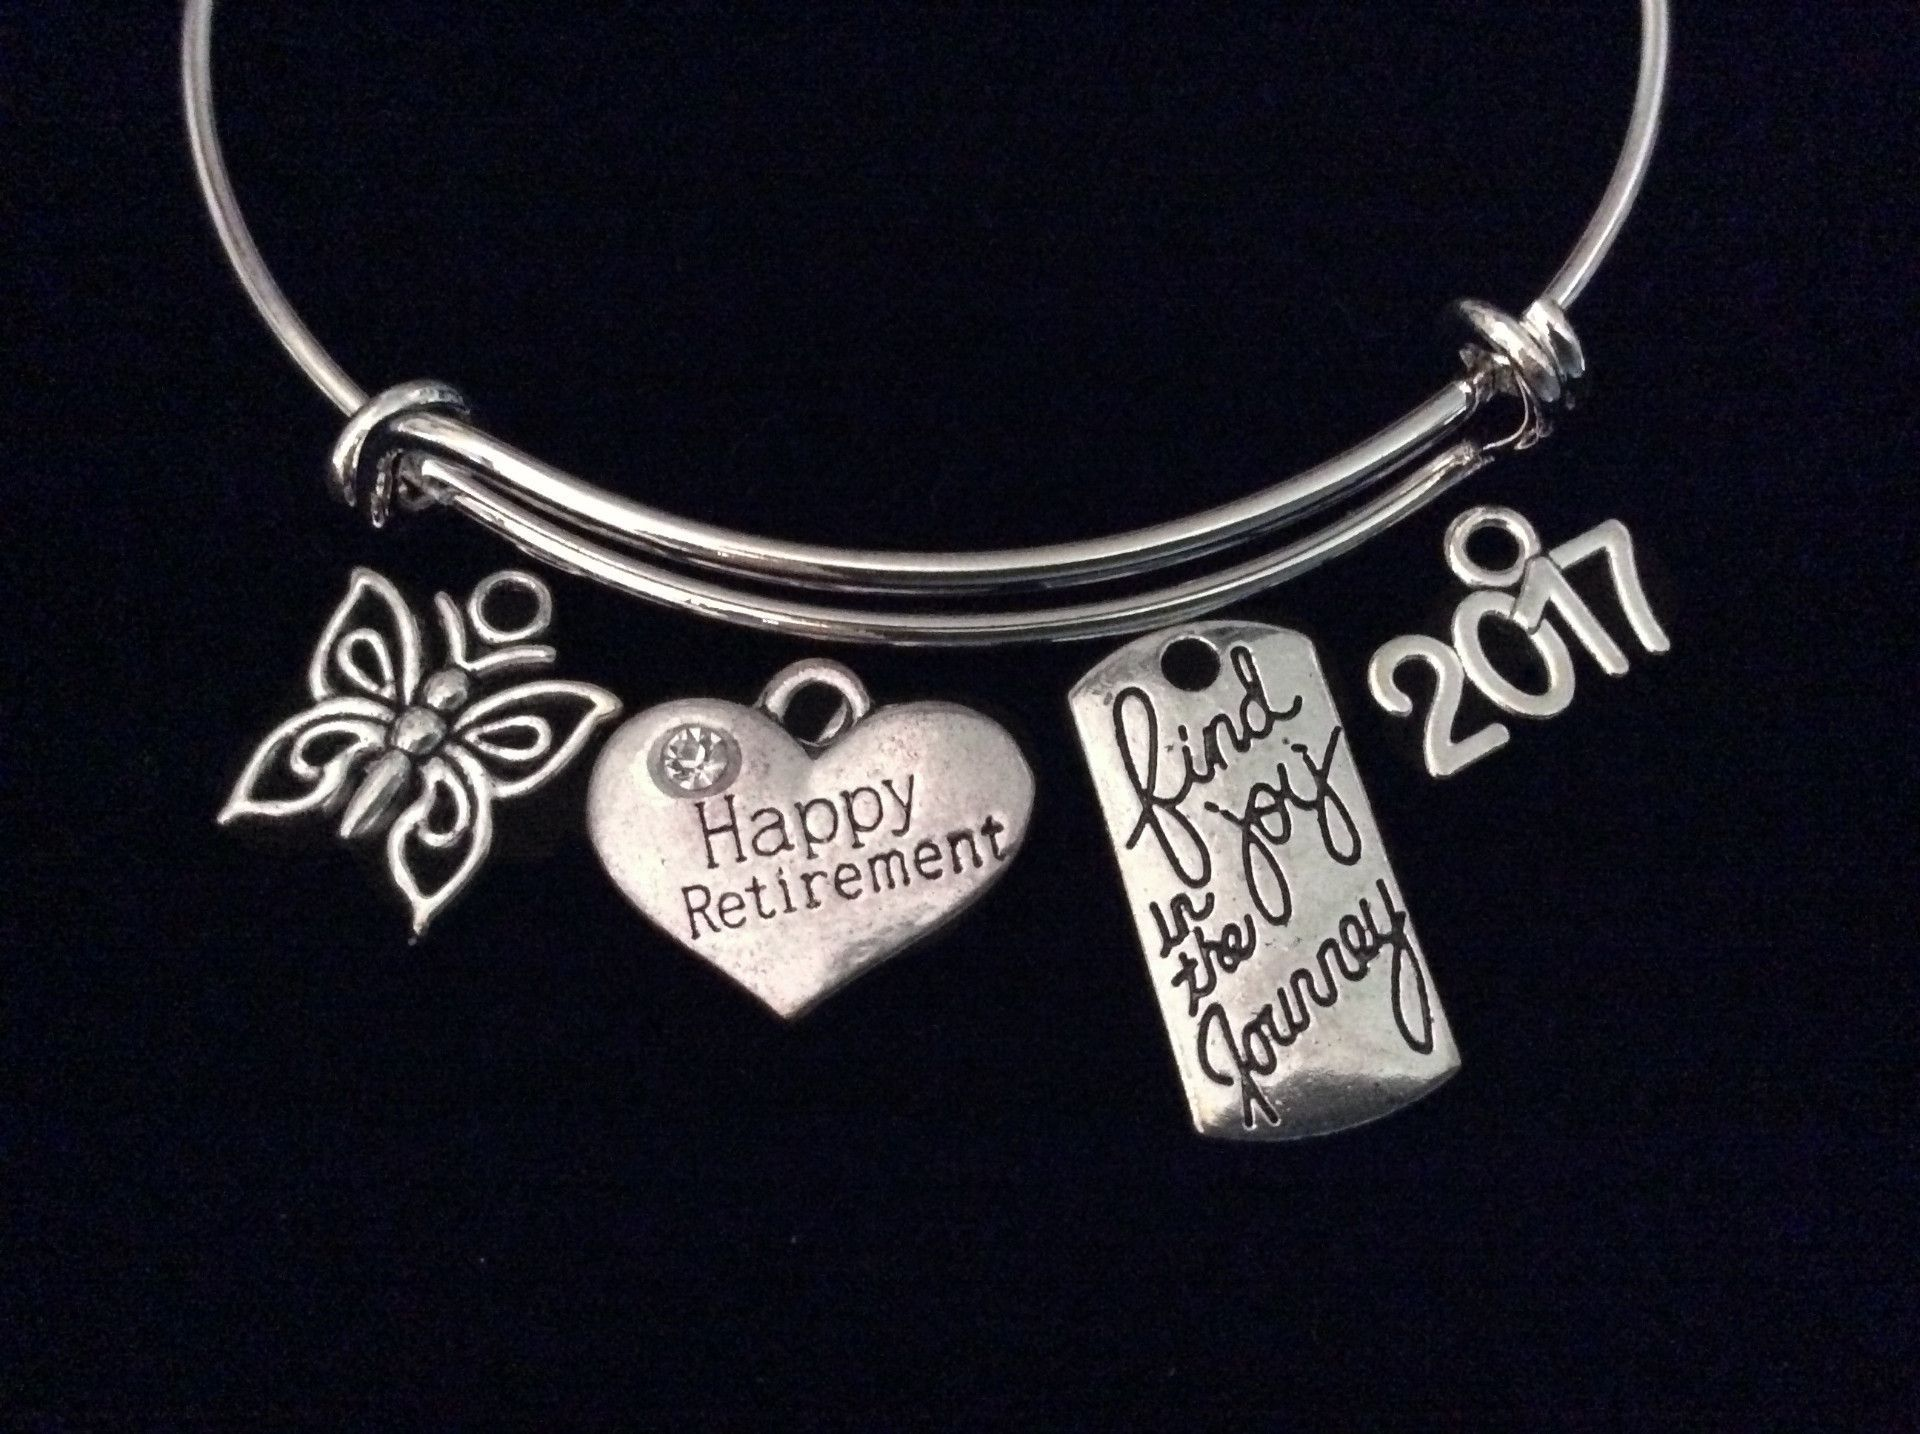 Happy Retirement 2017 Find Joy in the Journey Expandable Silver Charm Bracelet Adjustable Bangle Office Worker Gift Retire